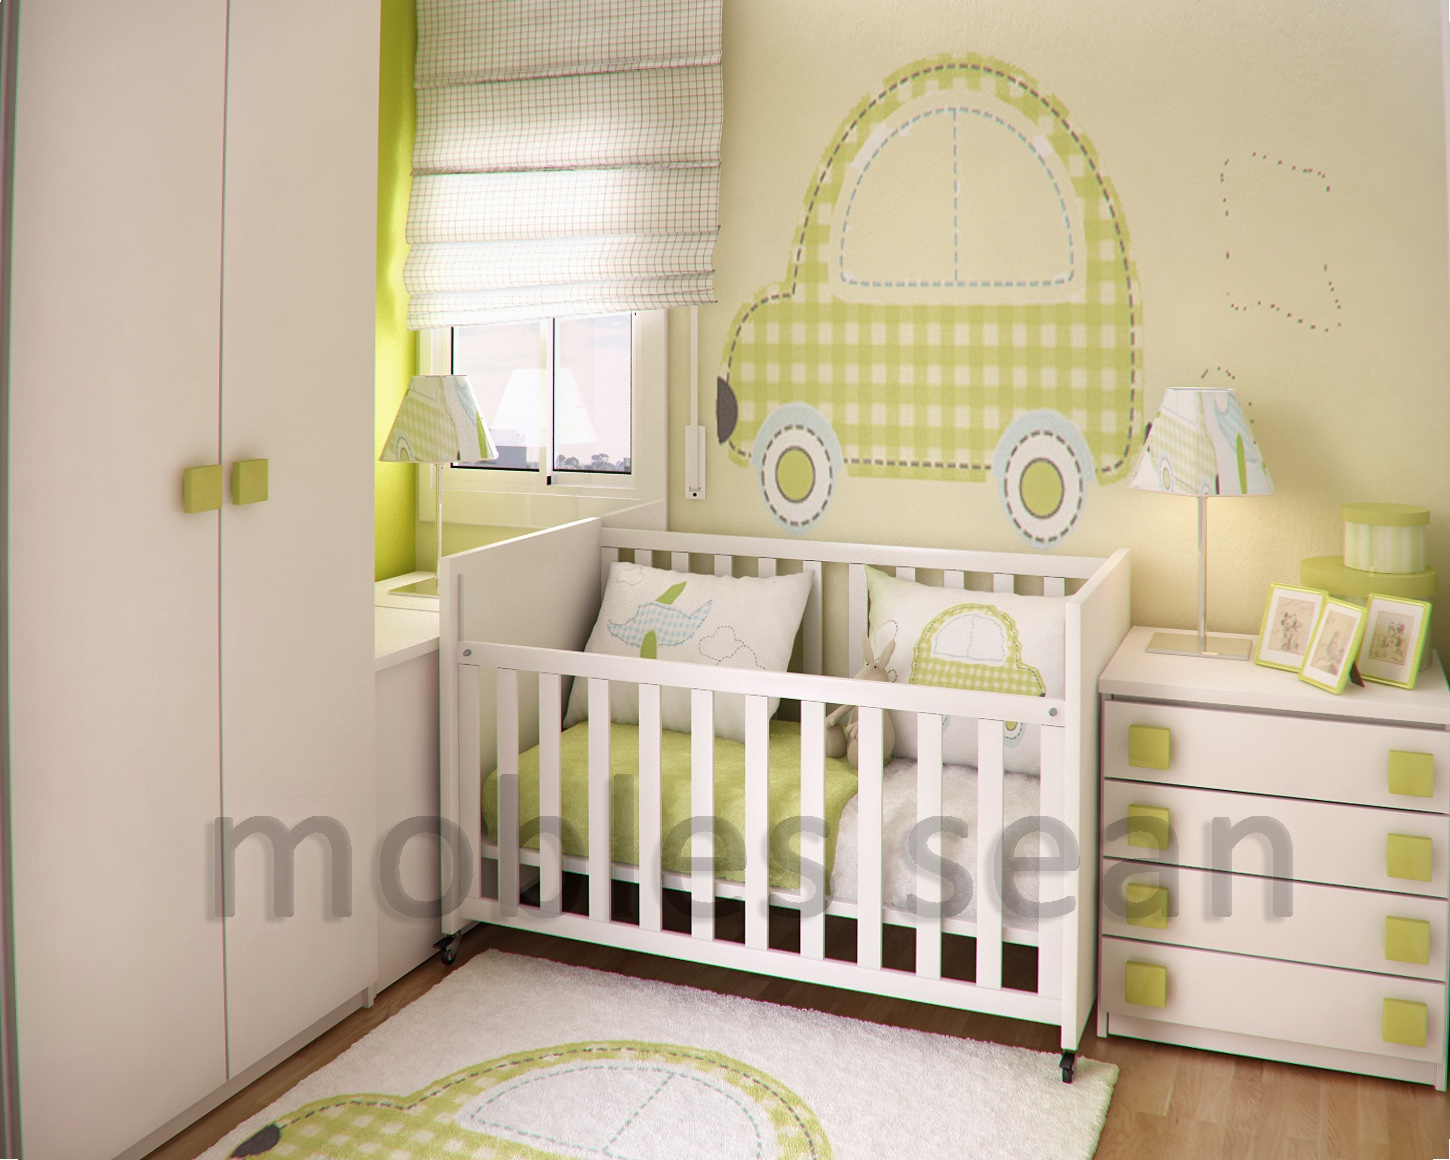 Baby room interior design exotic house interior designs for Baby rooms decoration ideas